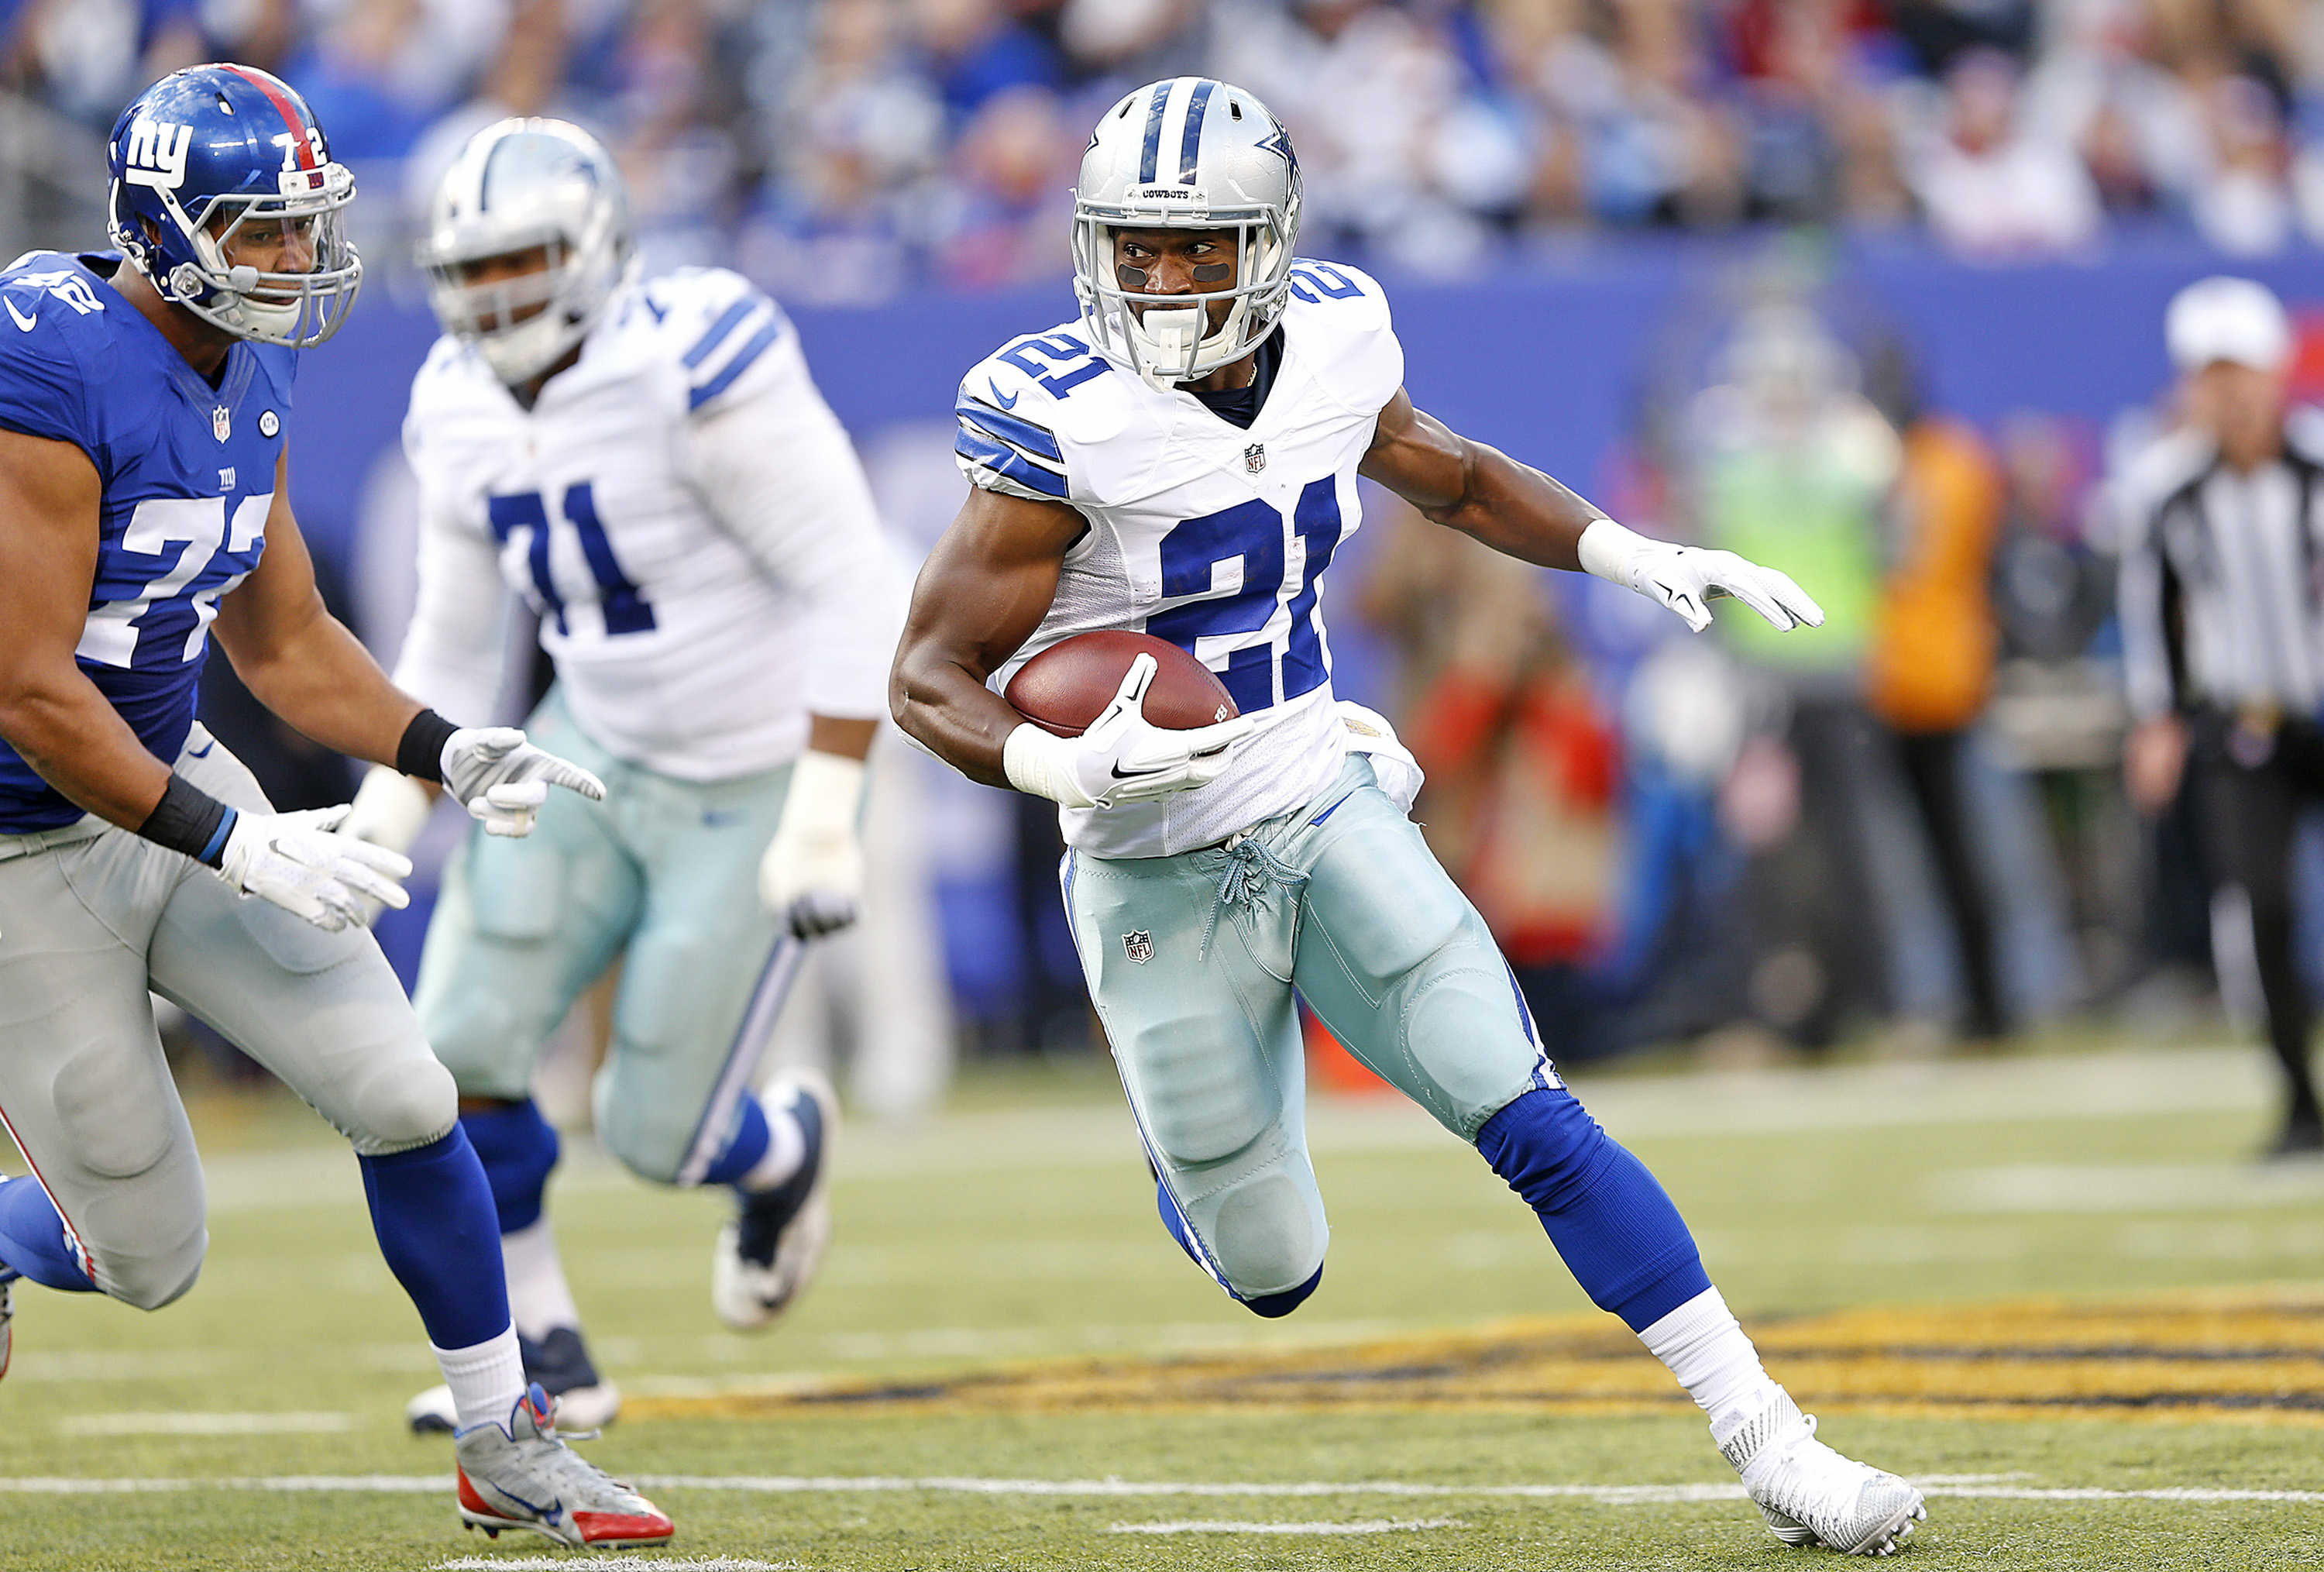 randle personals Cowboys running back joseph randle is facing discipline for violating the nfl's personal conduct policy last february, according to multiple league sources.